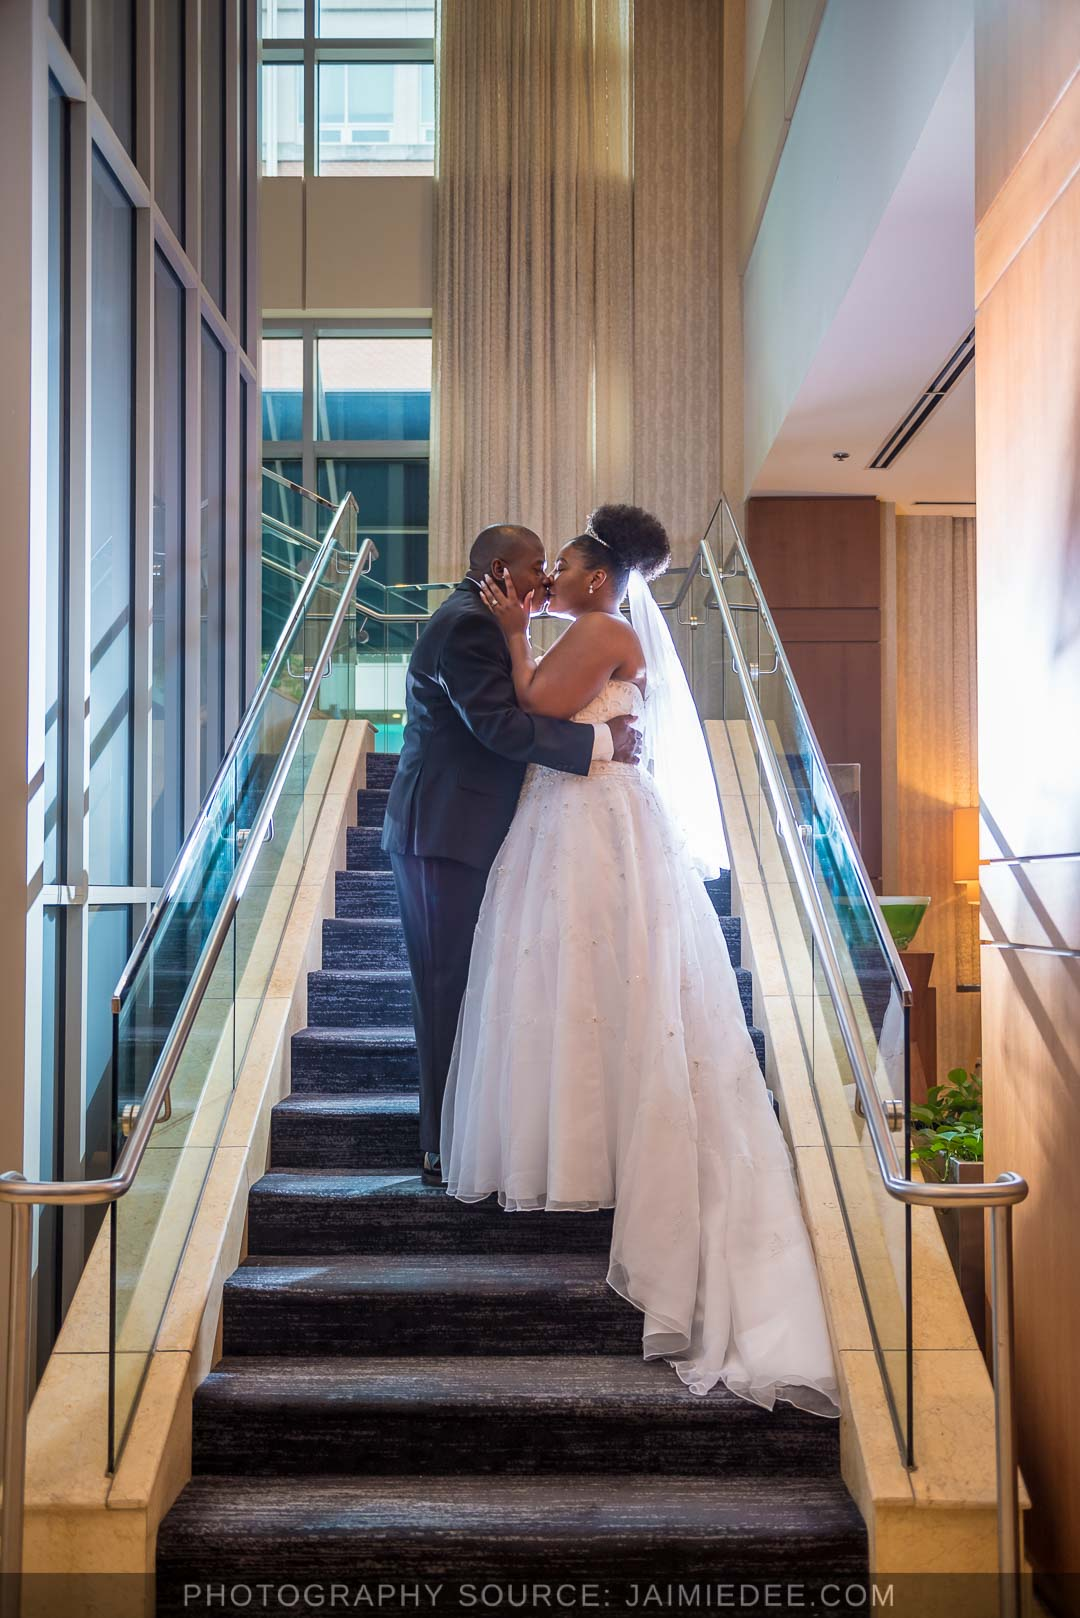 Georgia Tech Hotel and Conference Center bride and groom on staircase in lobby area